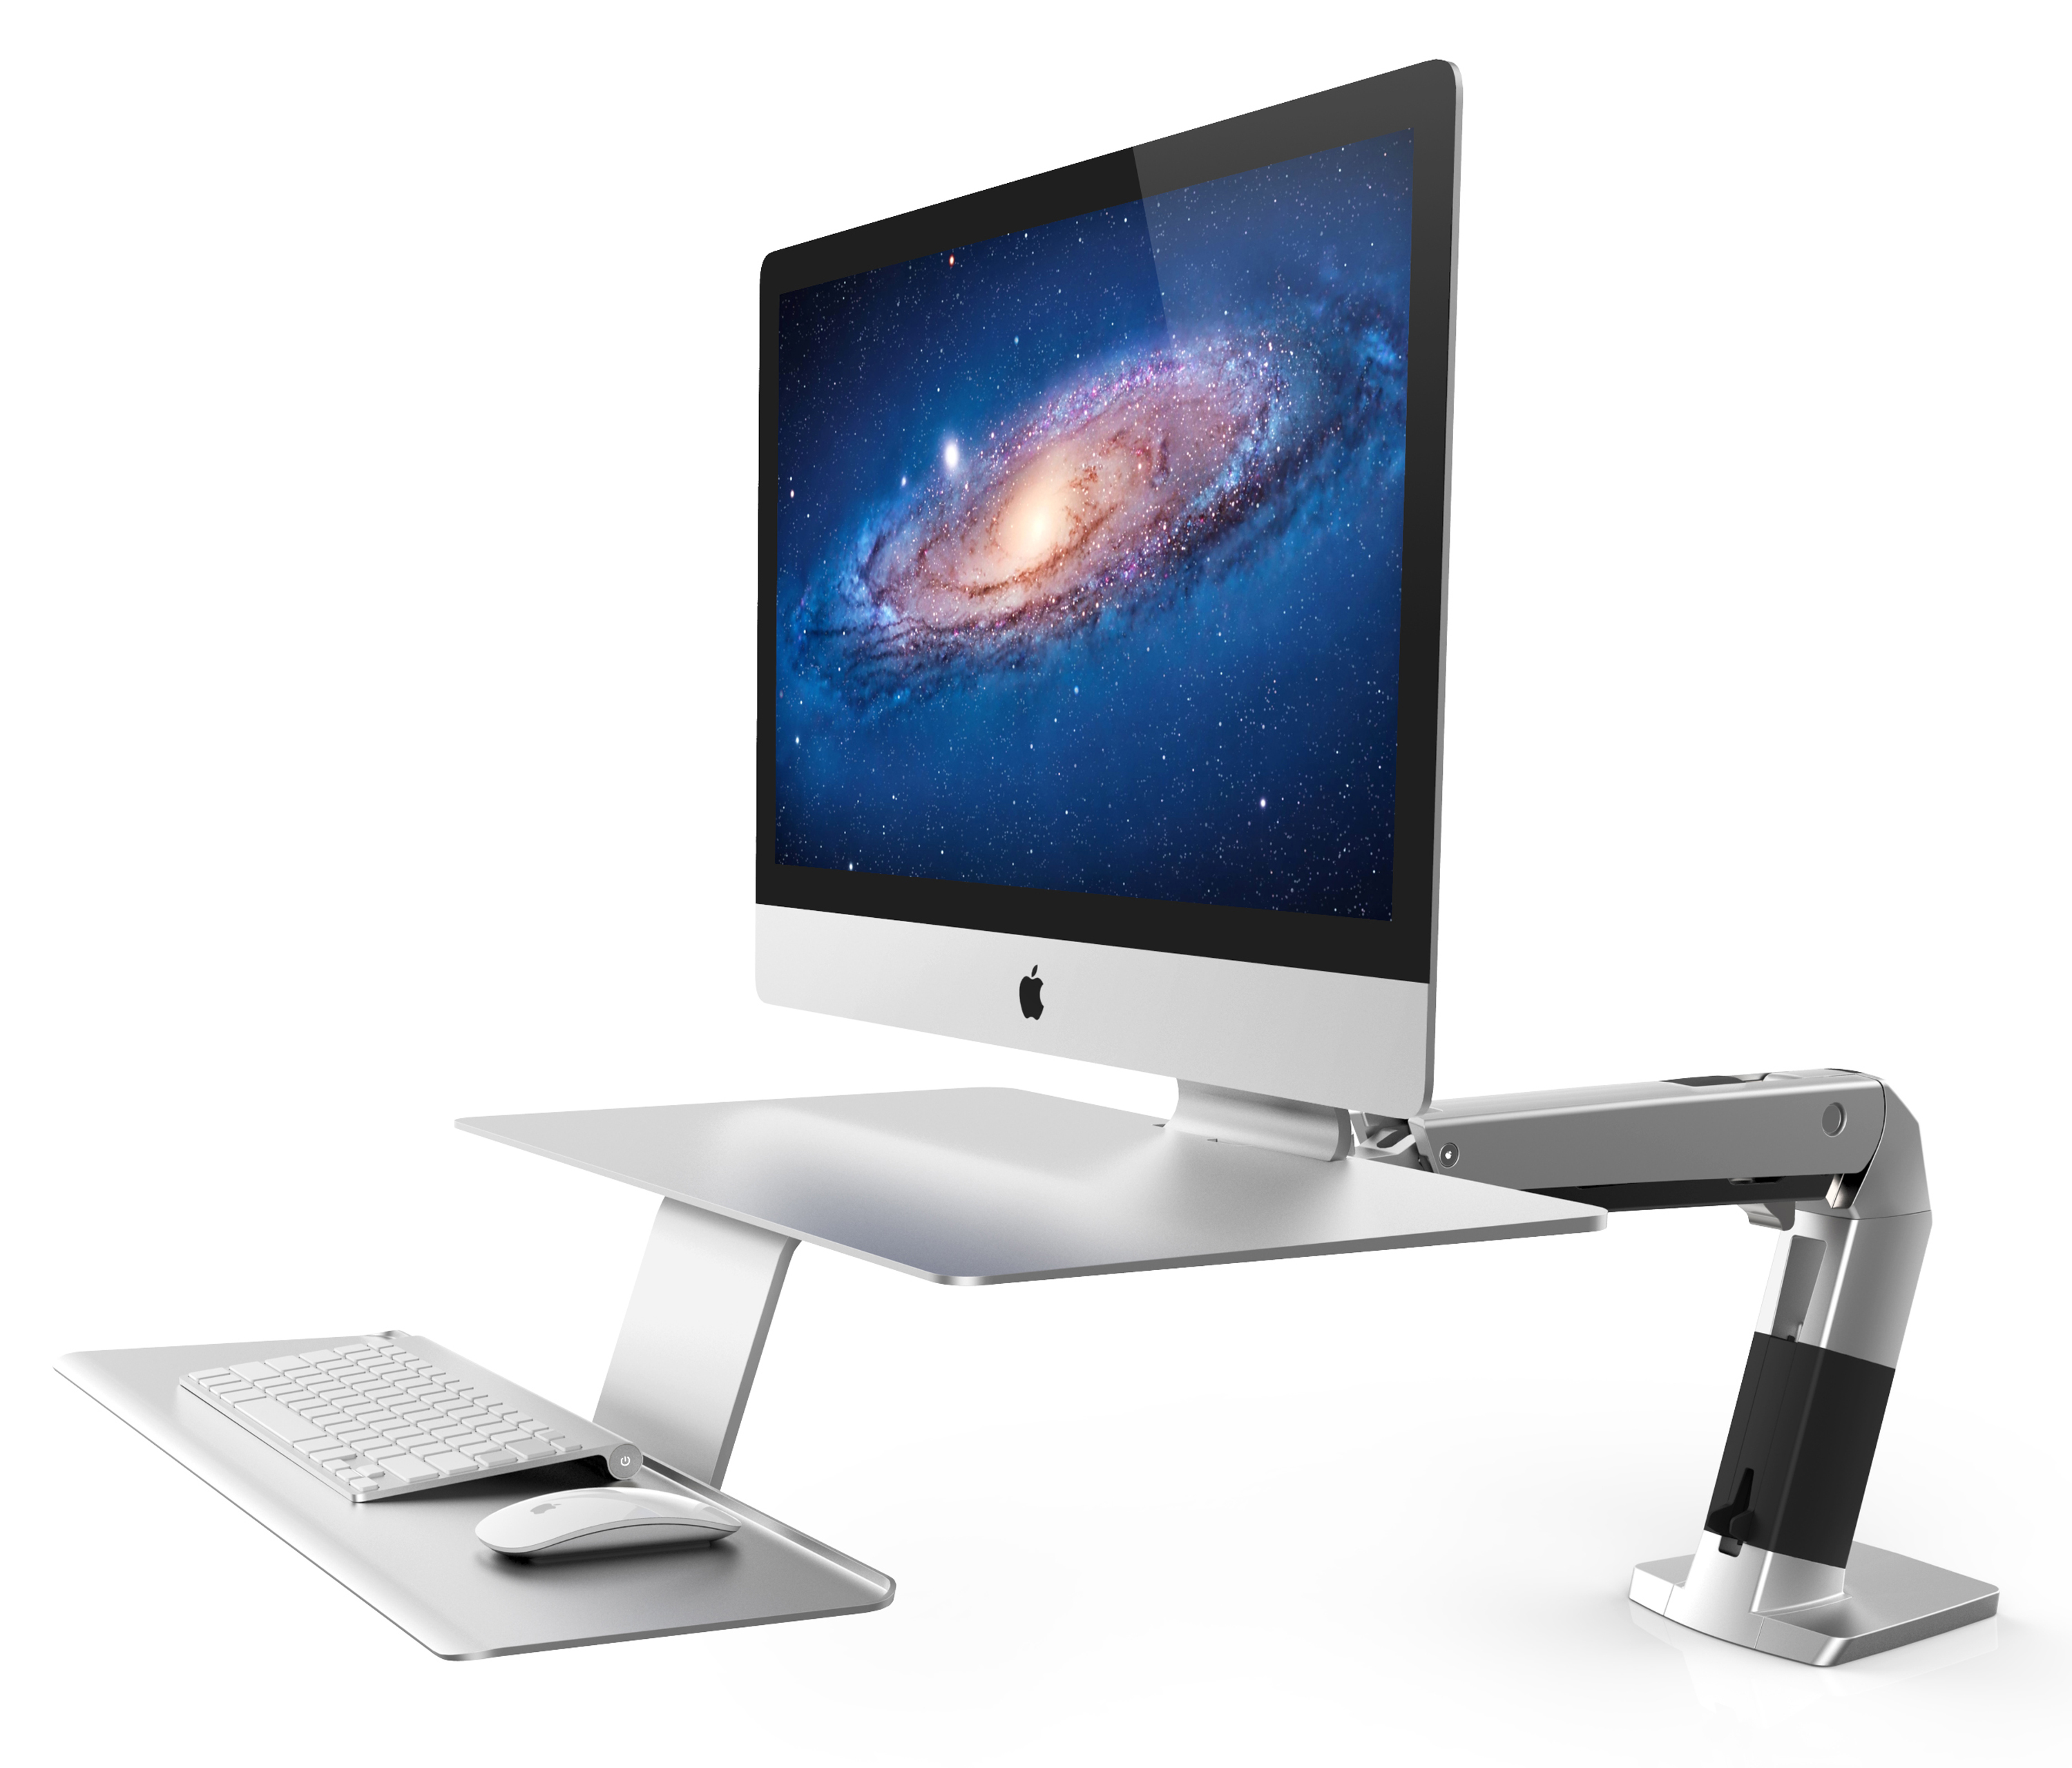 Luxury Apple Imac Wall Mount Homedecoro Cloud